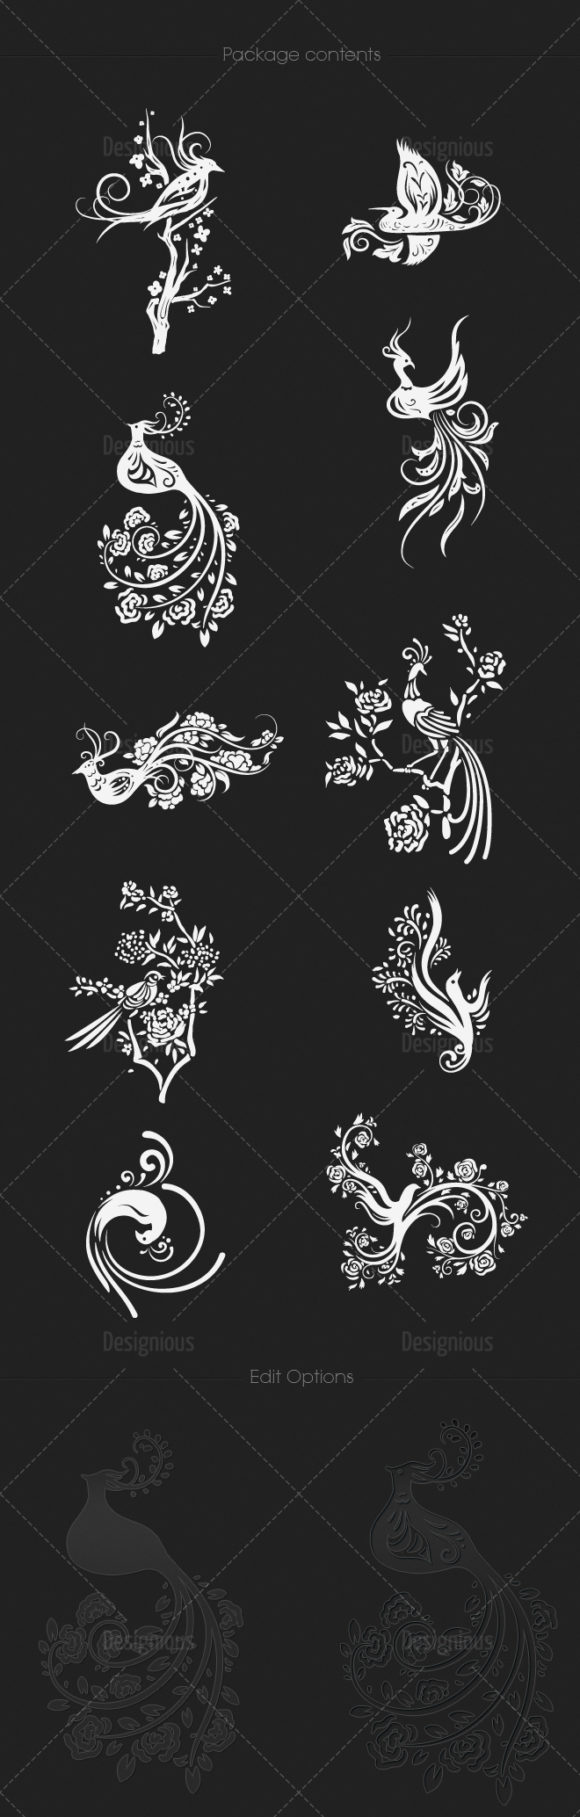 Chinese Birds Vector Pack 1 products designious chinese birds vector pack 1 large 1